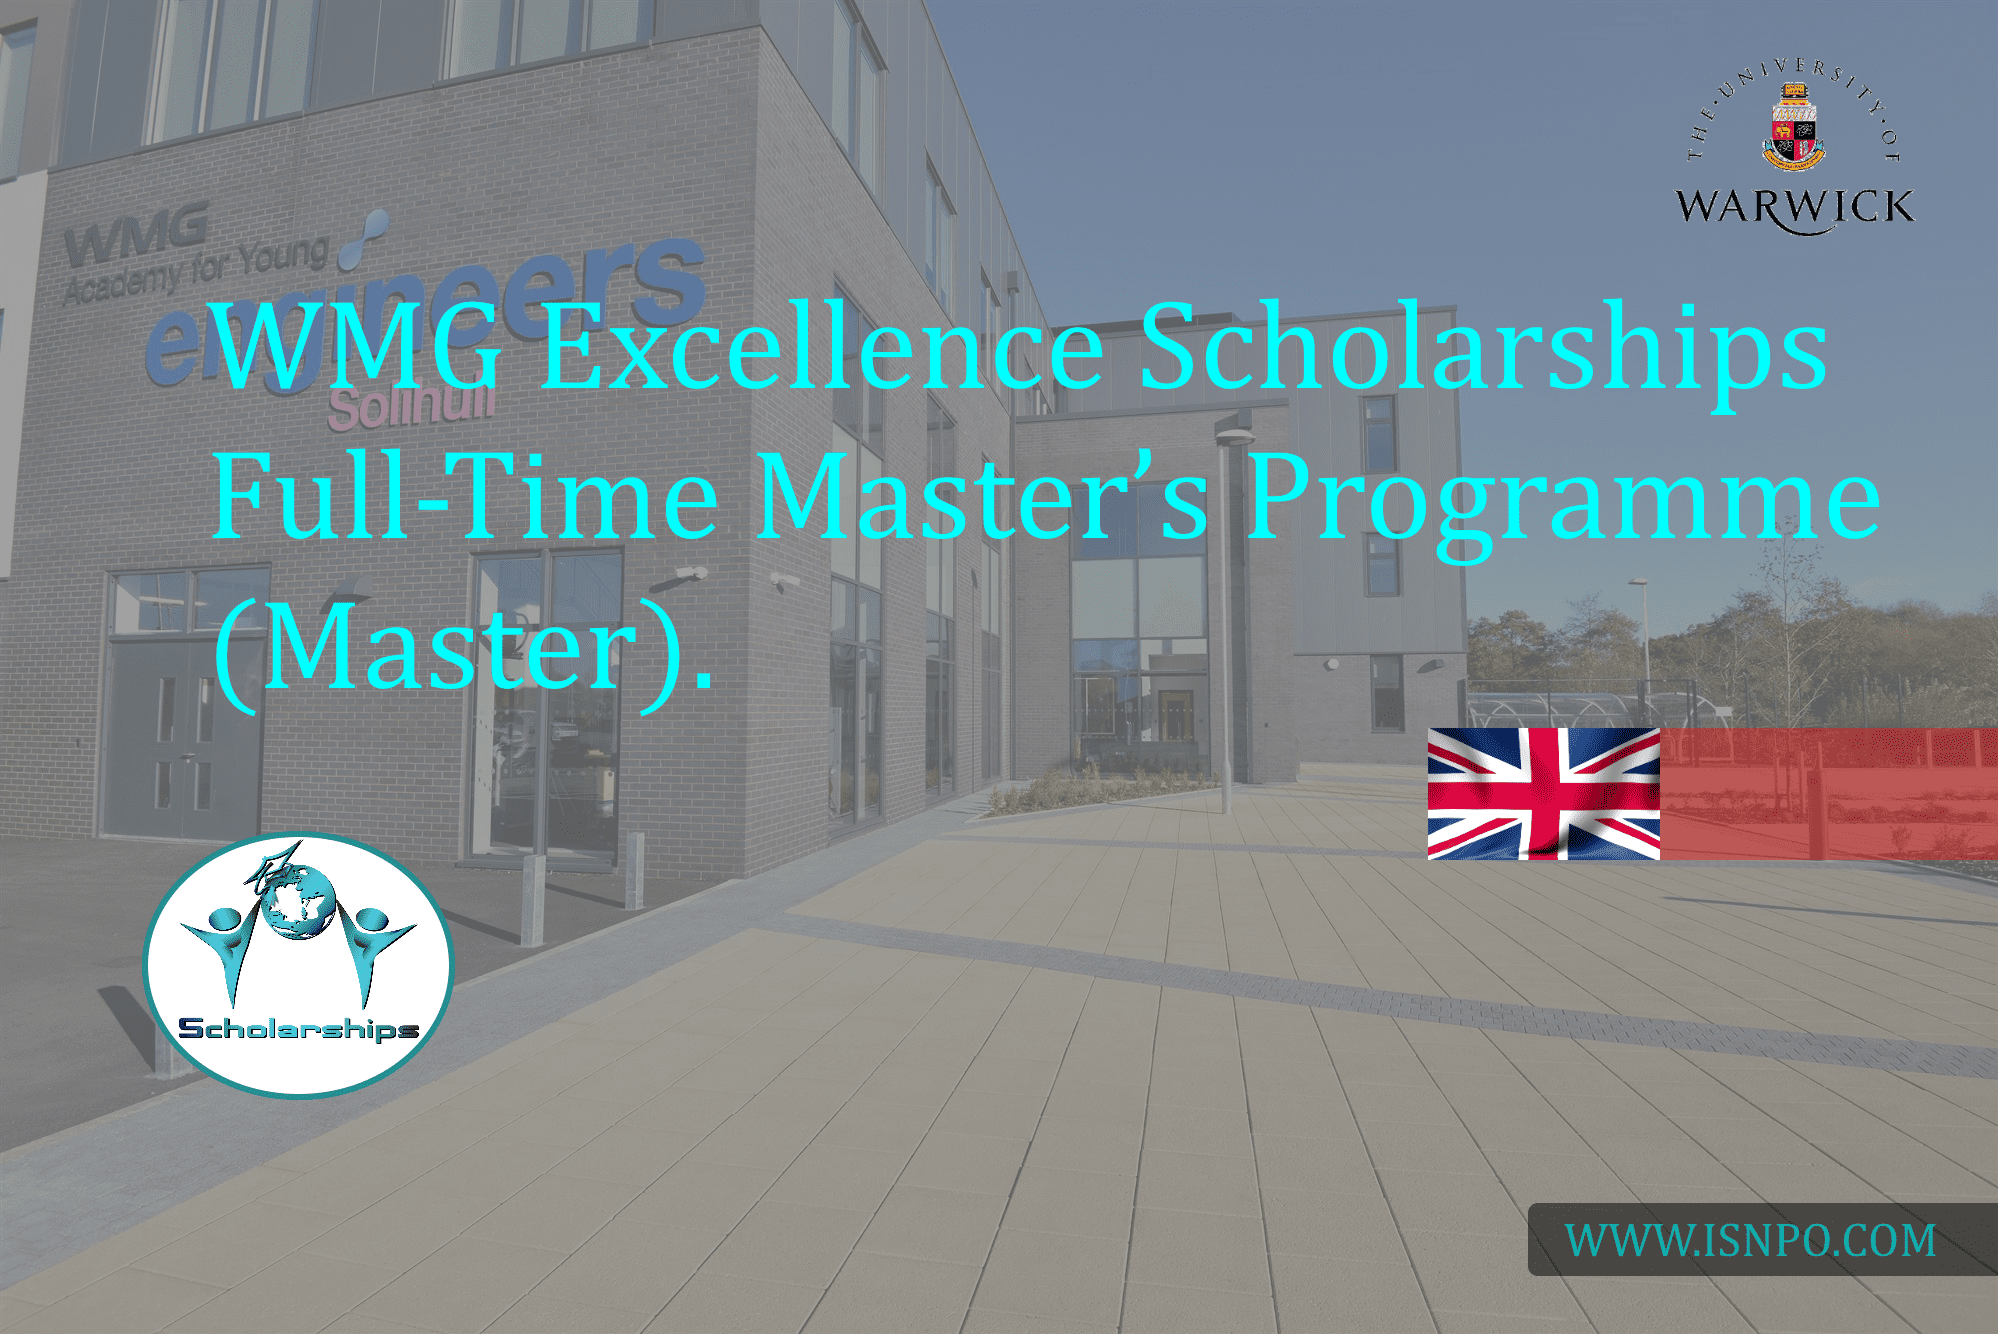 WMG Quality Scholarships Full-Time Master's Program